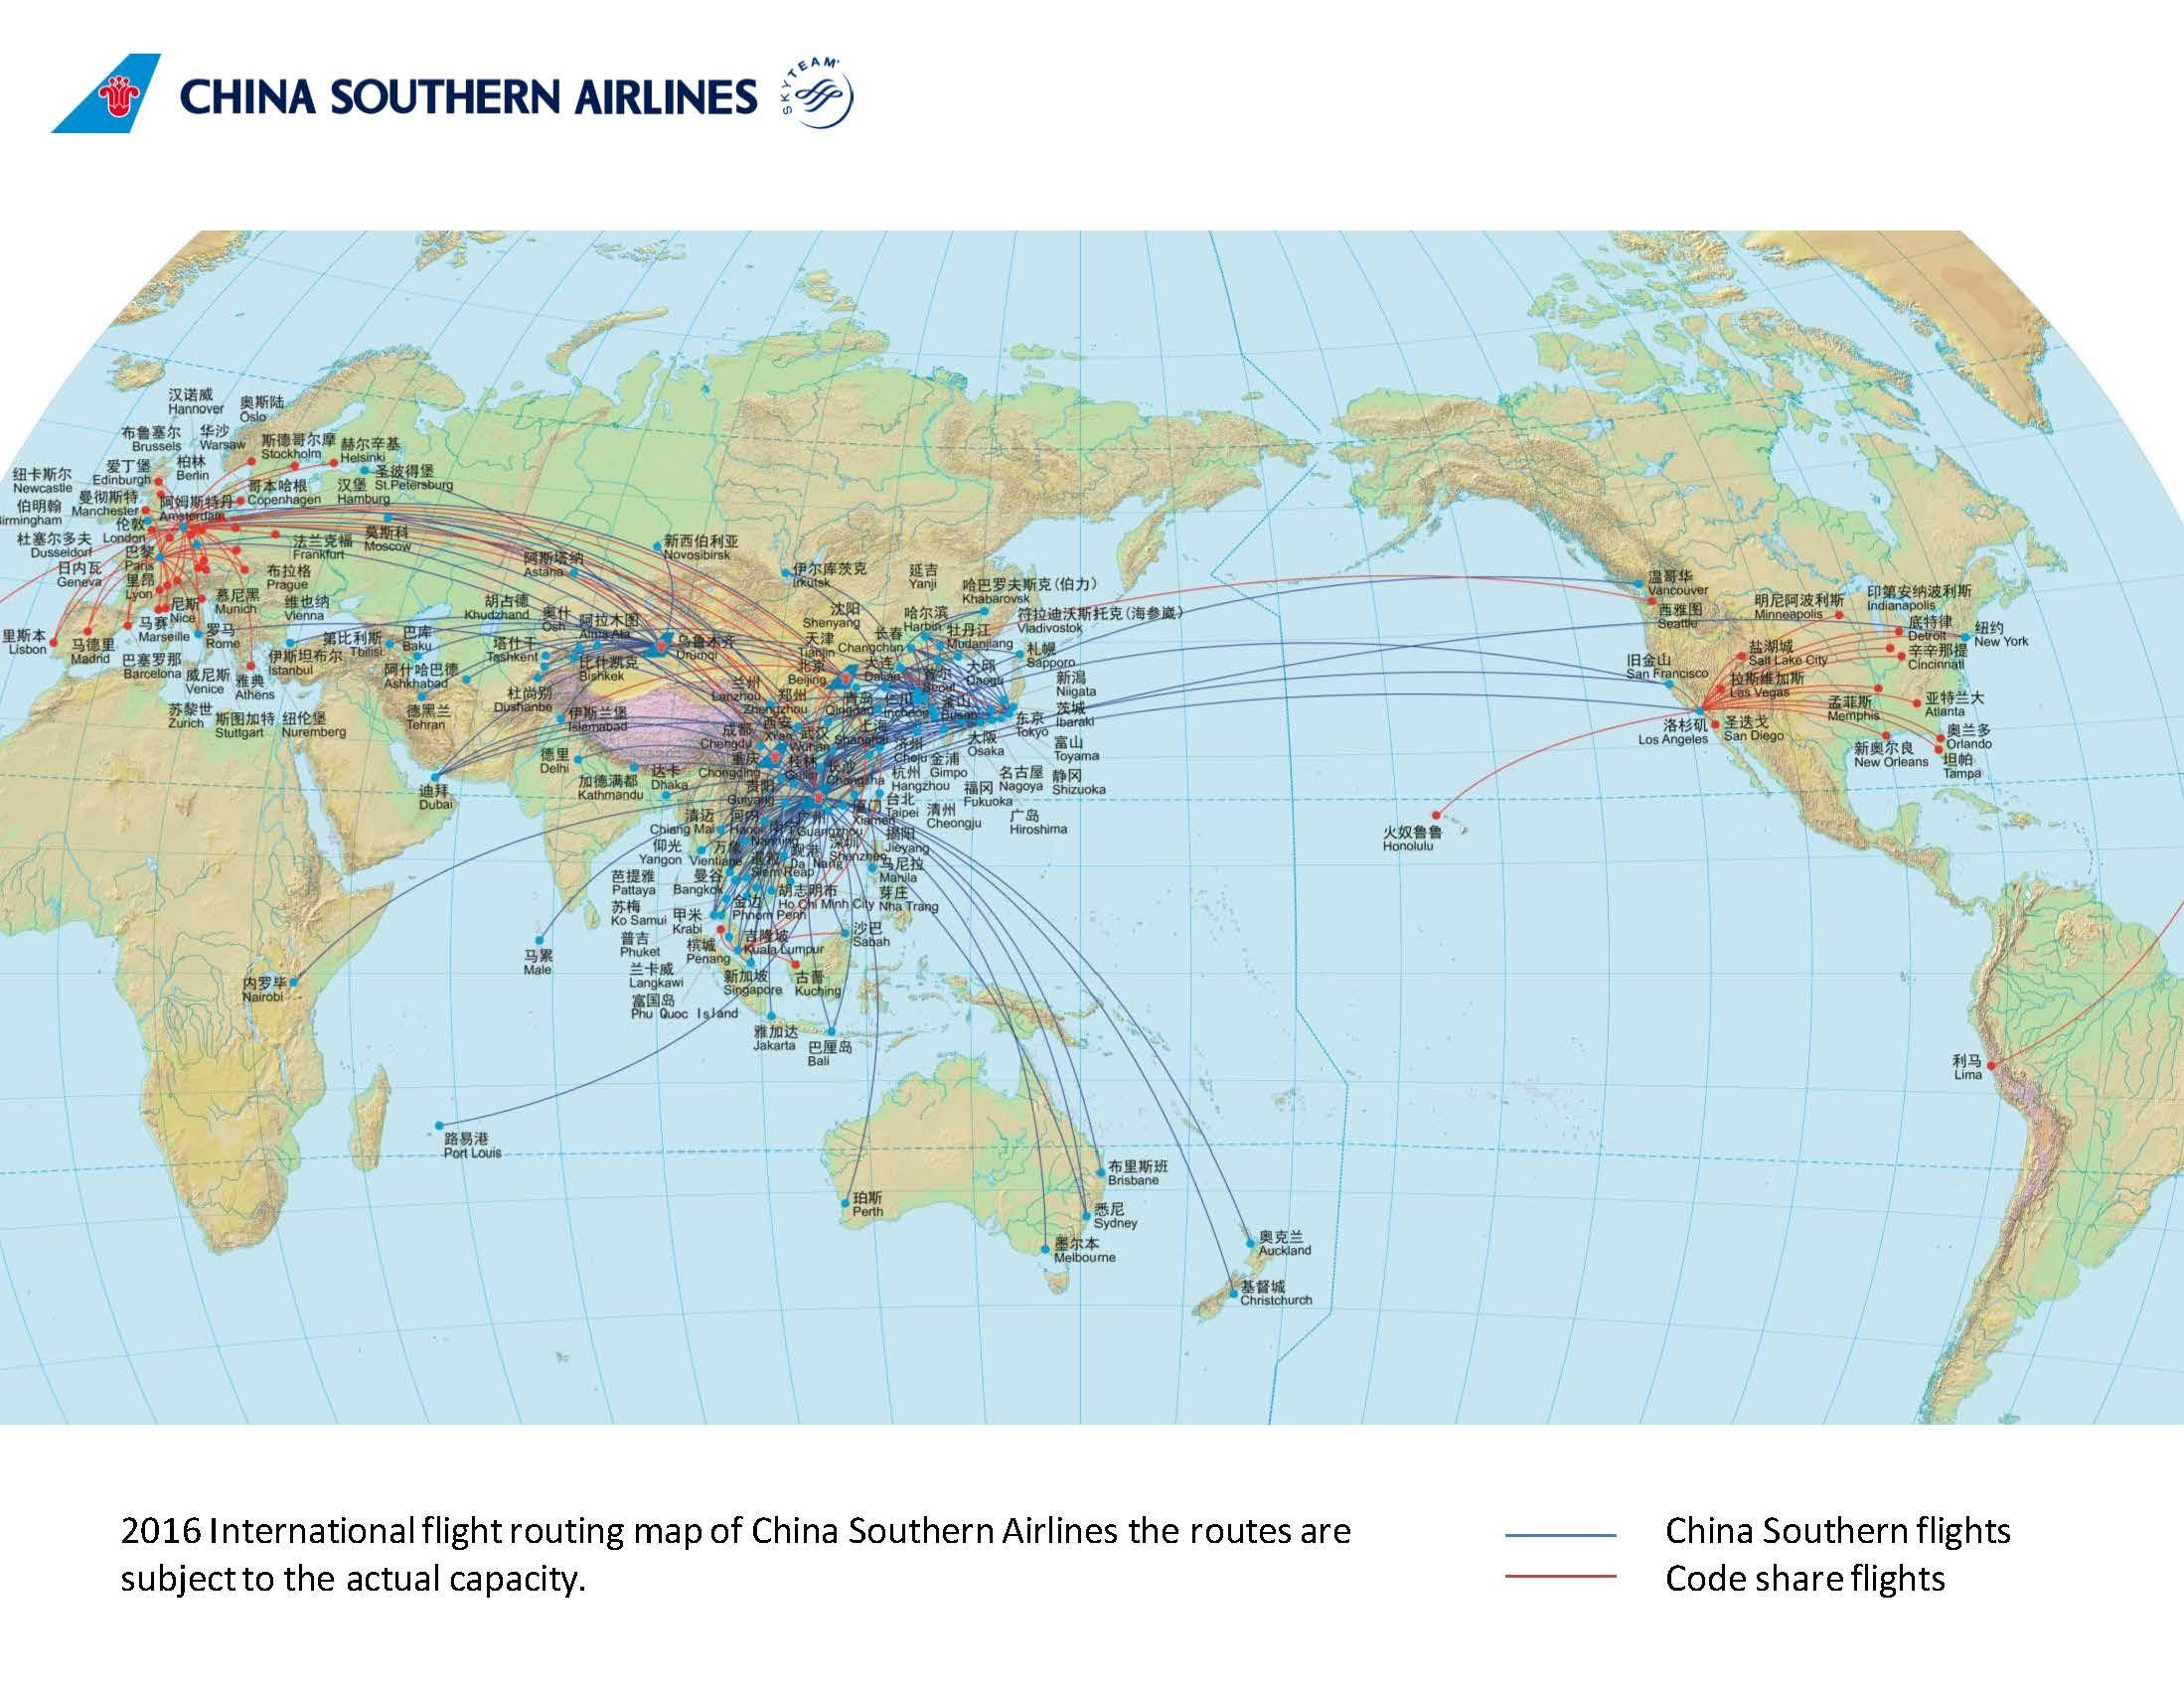 China southern airlines is a buy china southern airlines company china southern airlines route map source flychina publicscrutiny Gallery